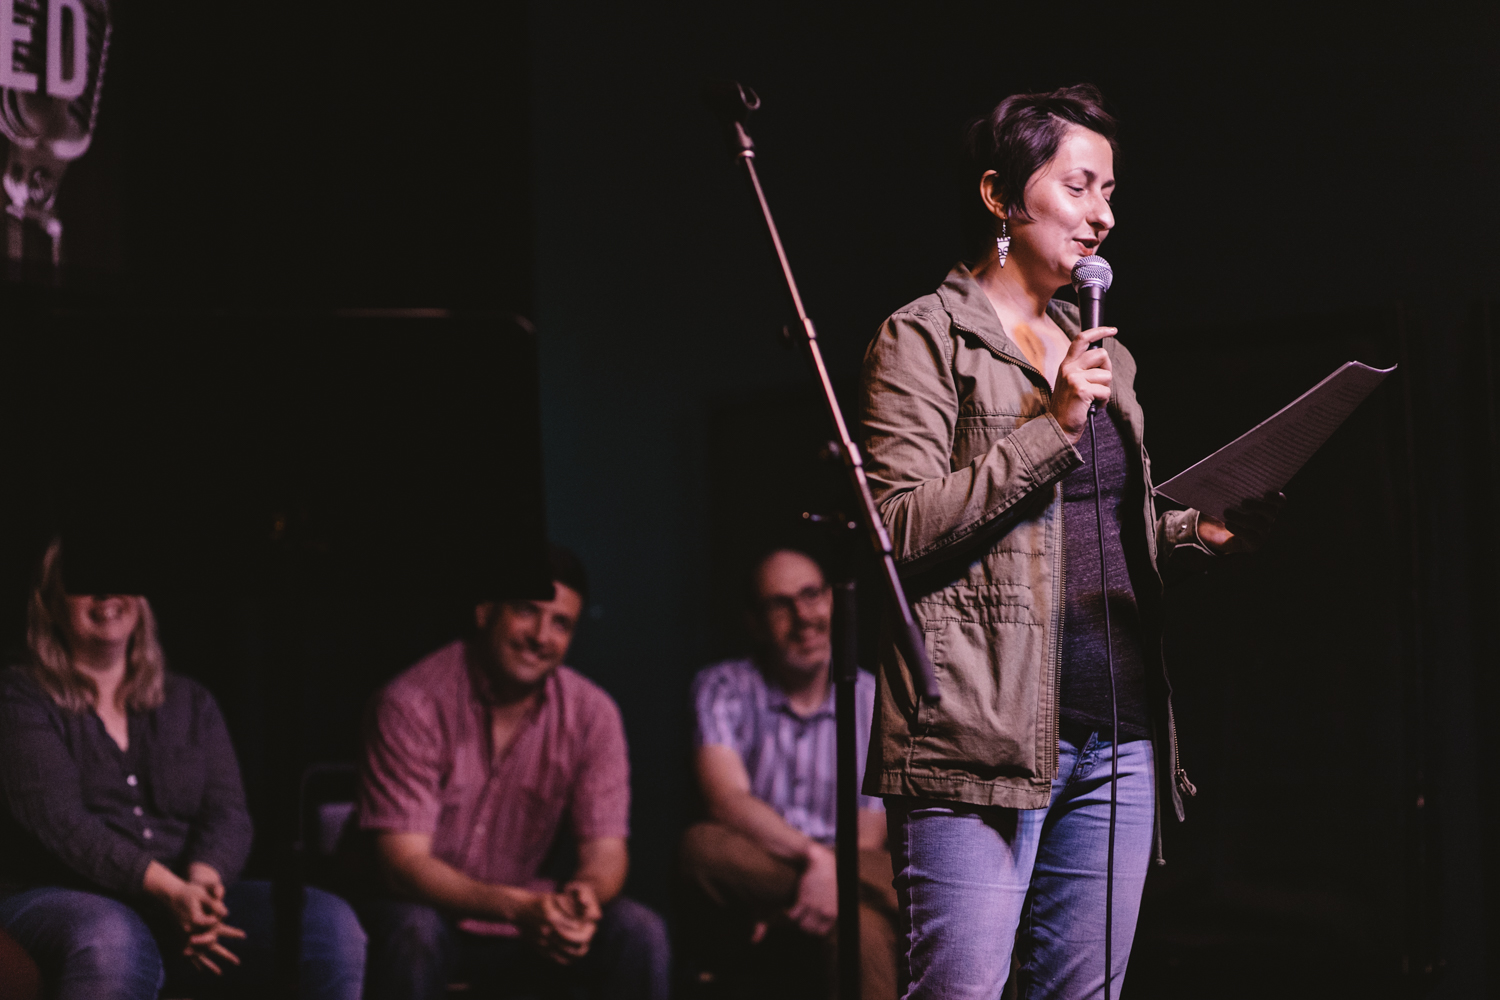 Trish DiFranco tells a story on stage with laughing people watching